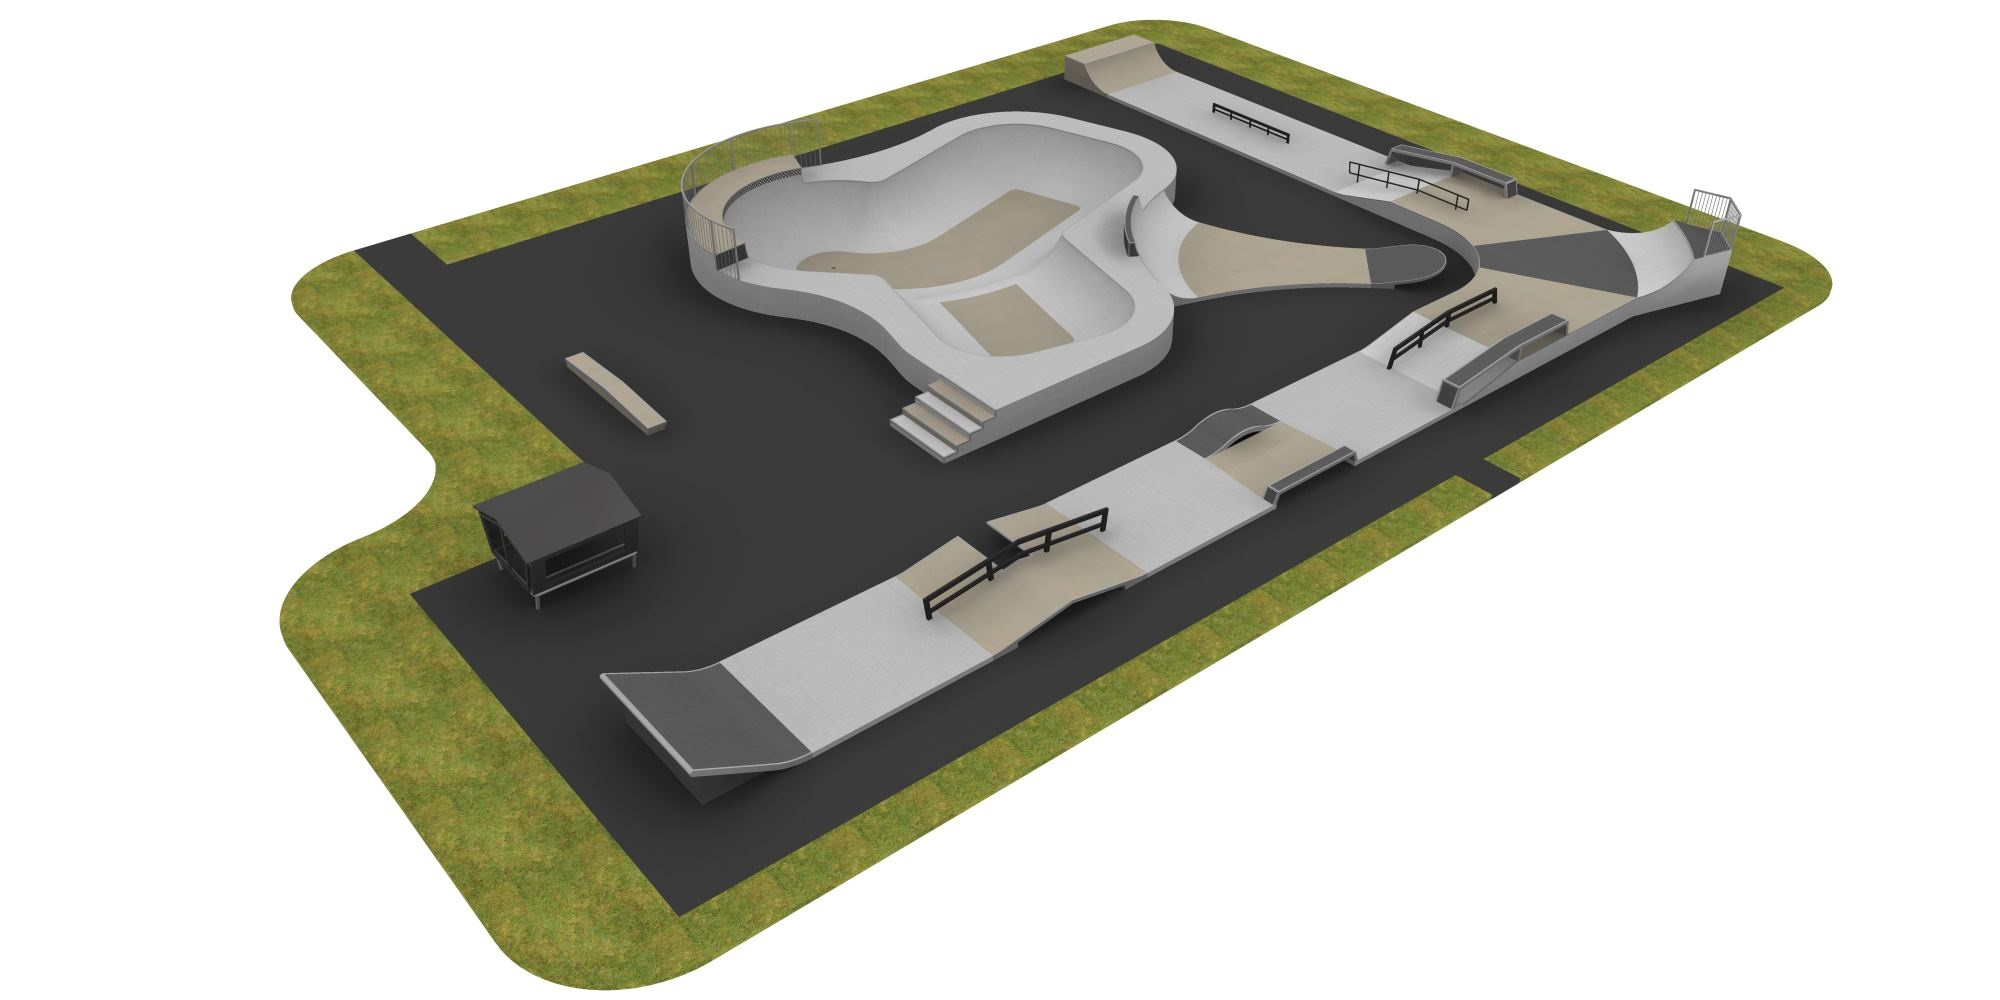 The winning design which will be built at Leisure World